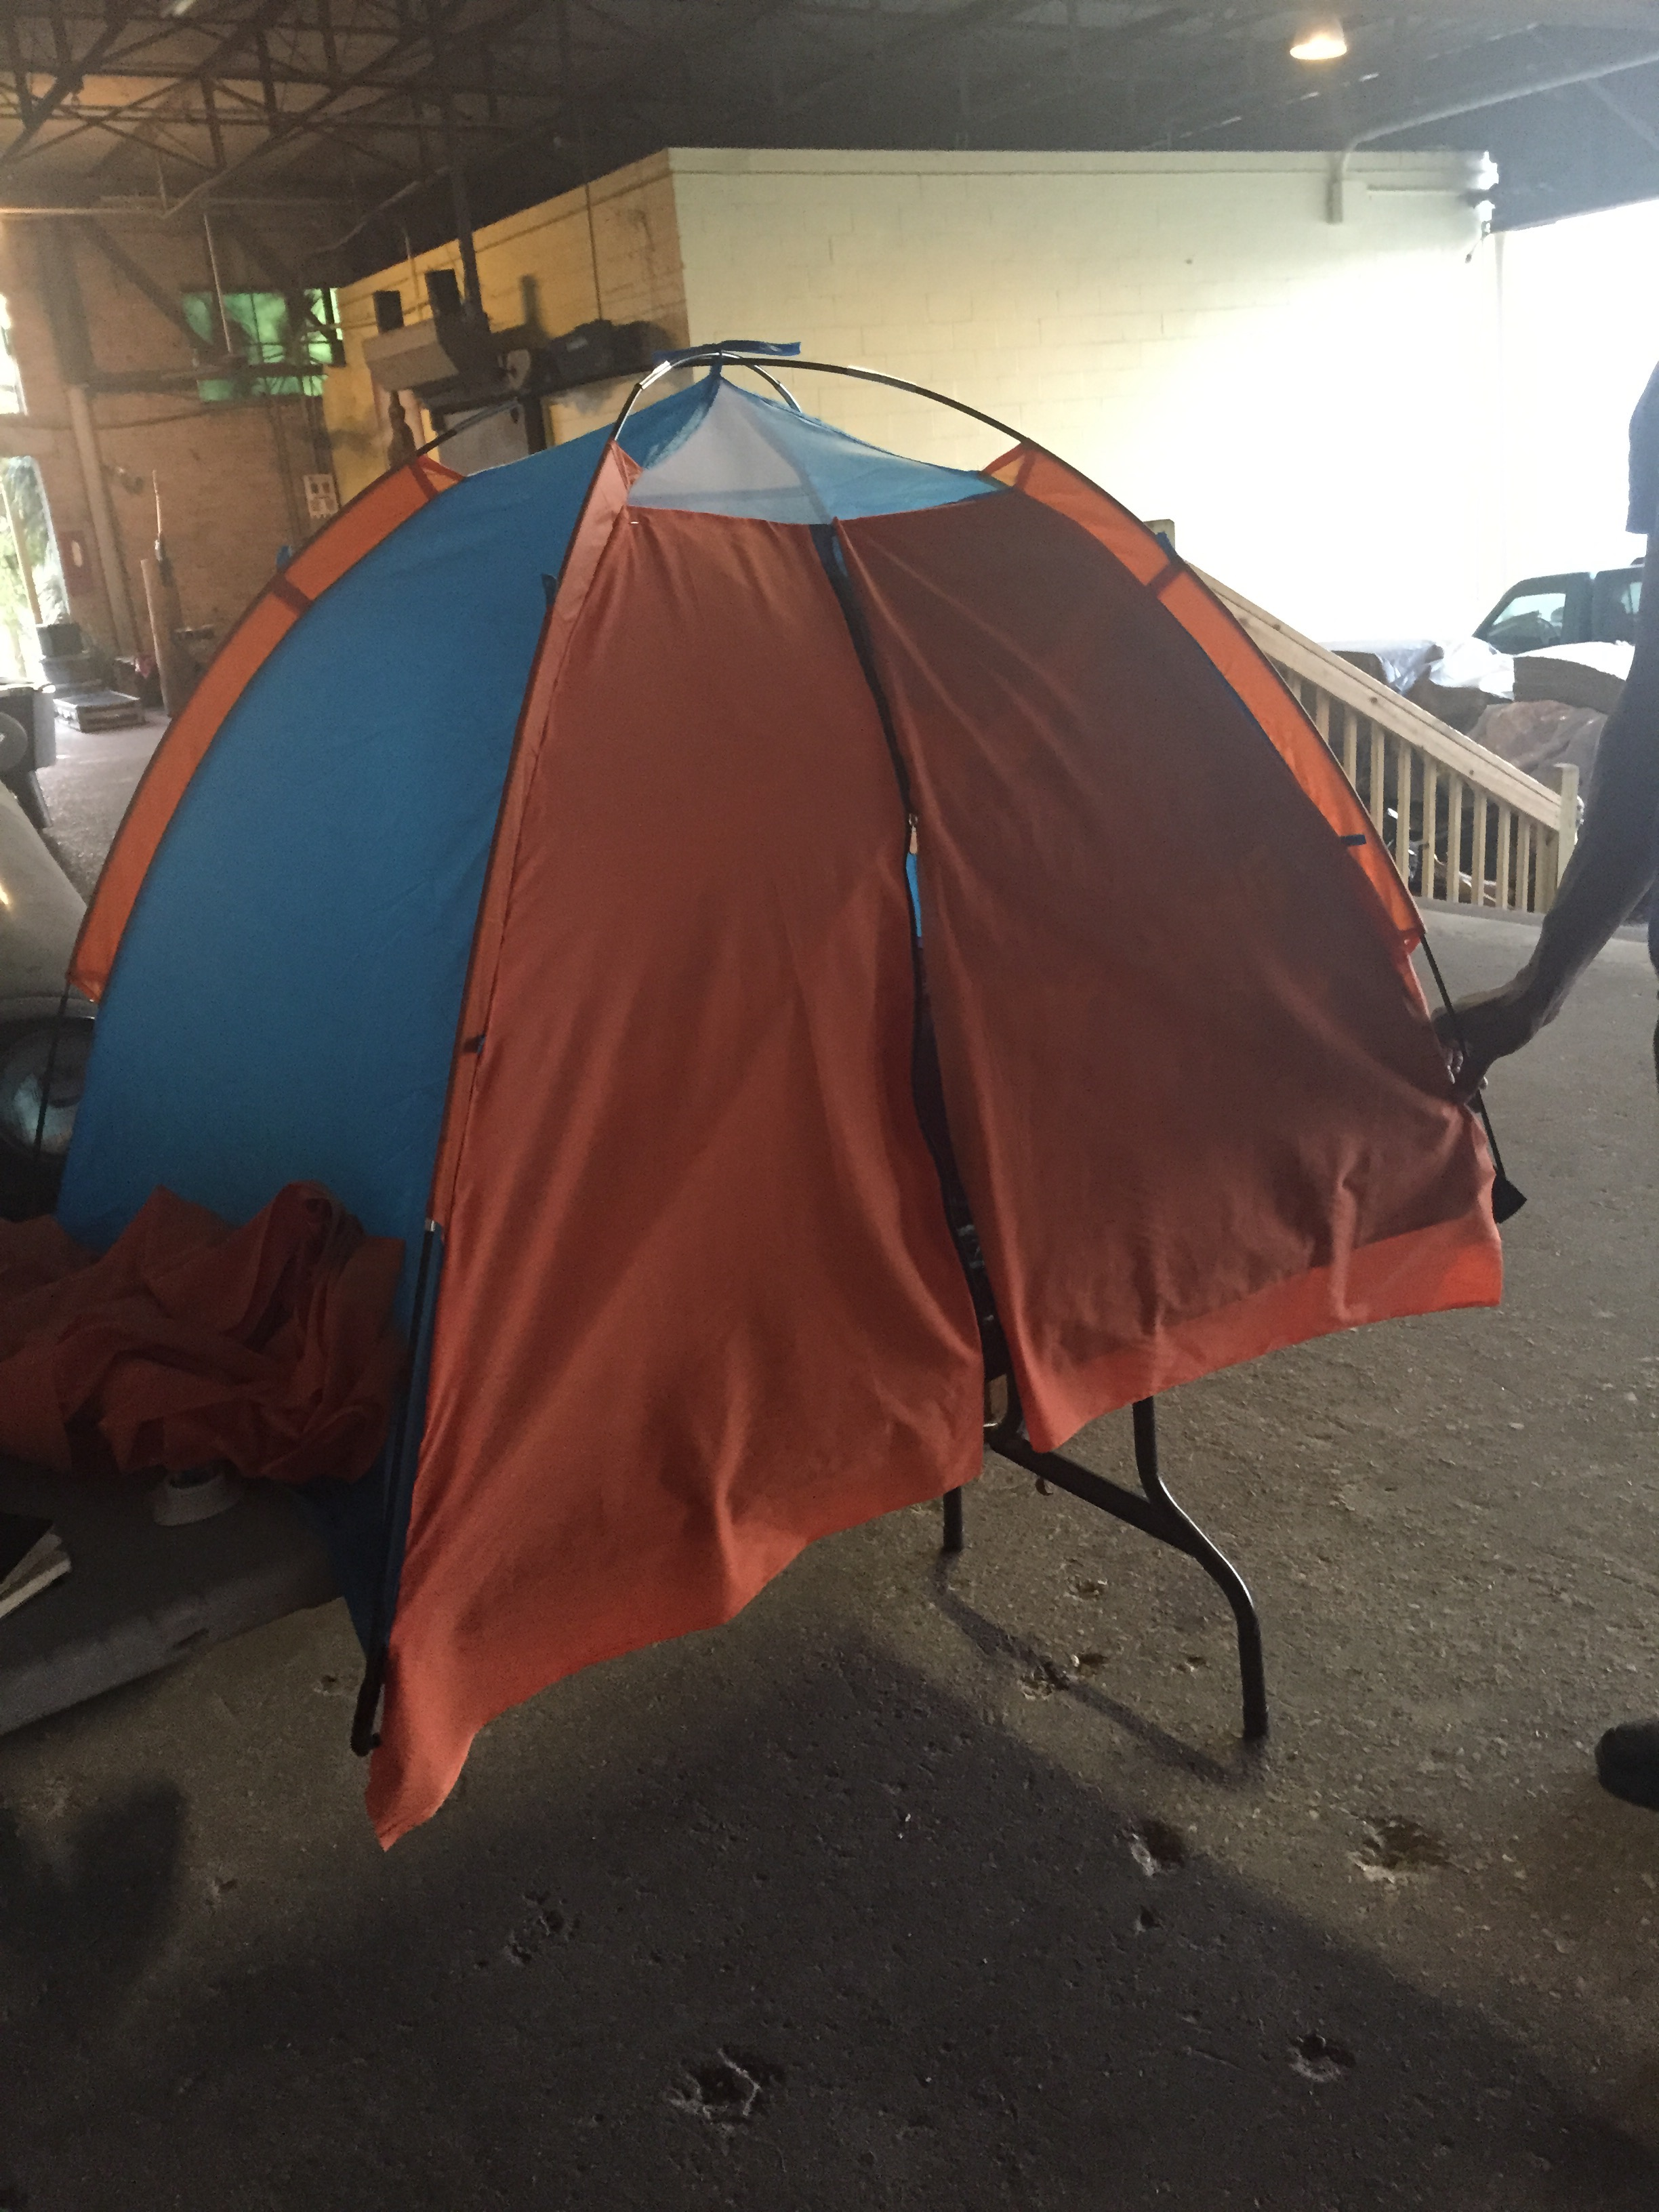 I covered the front of a kid's tent.